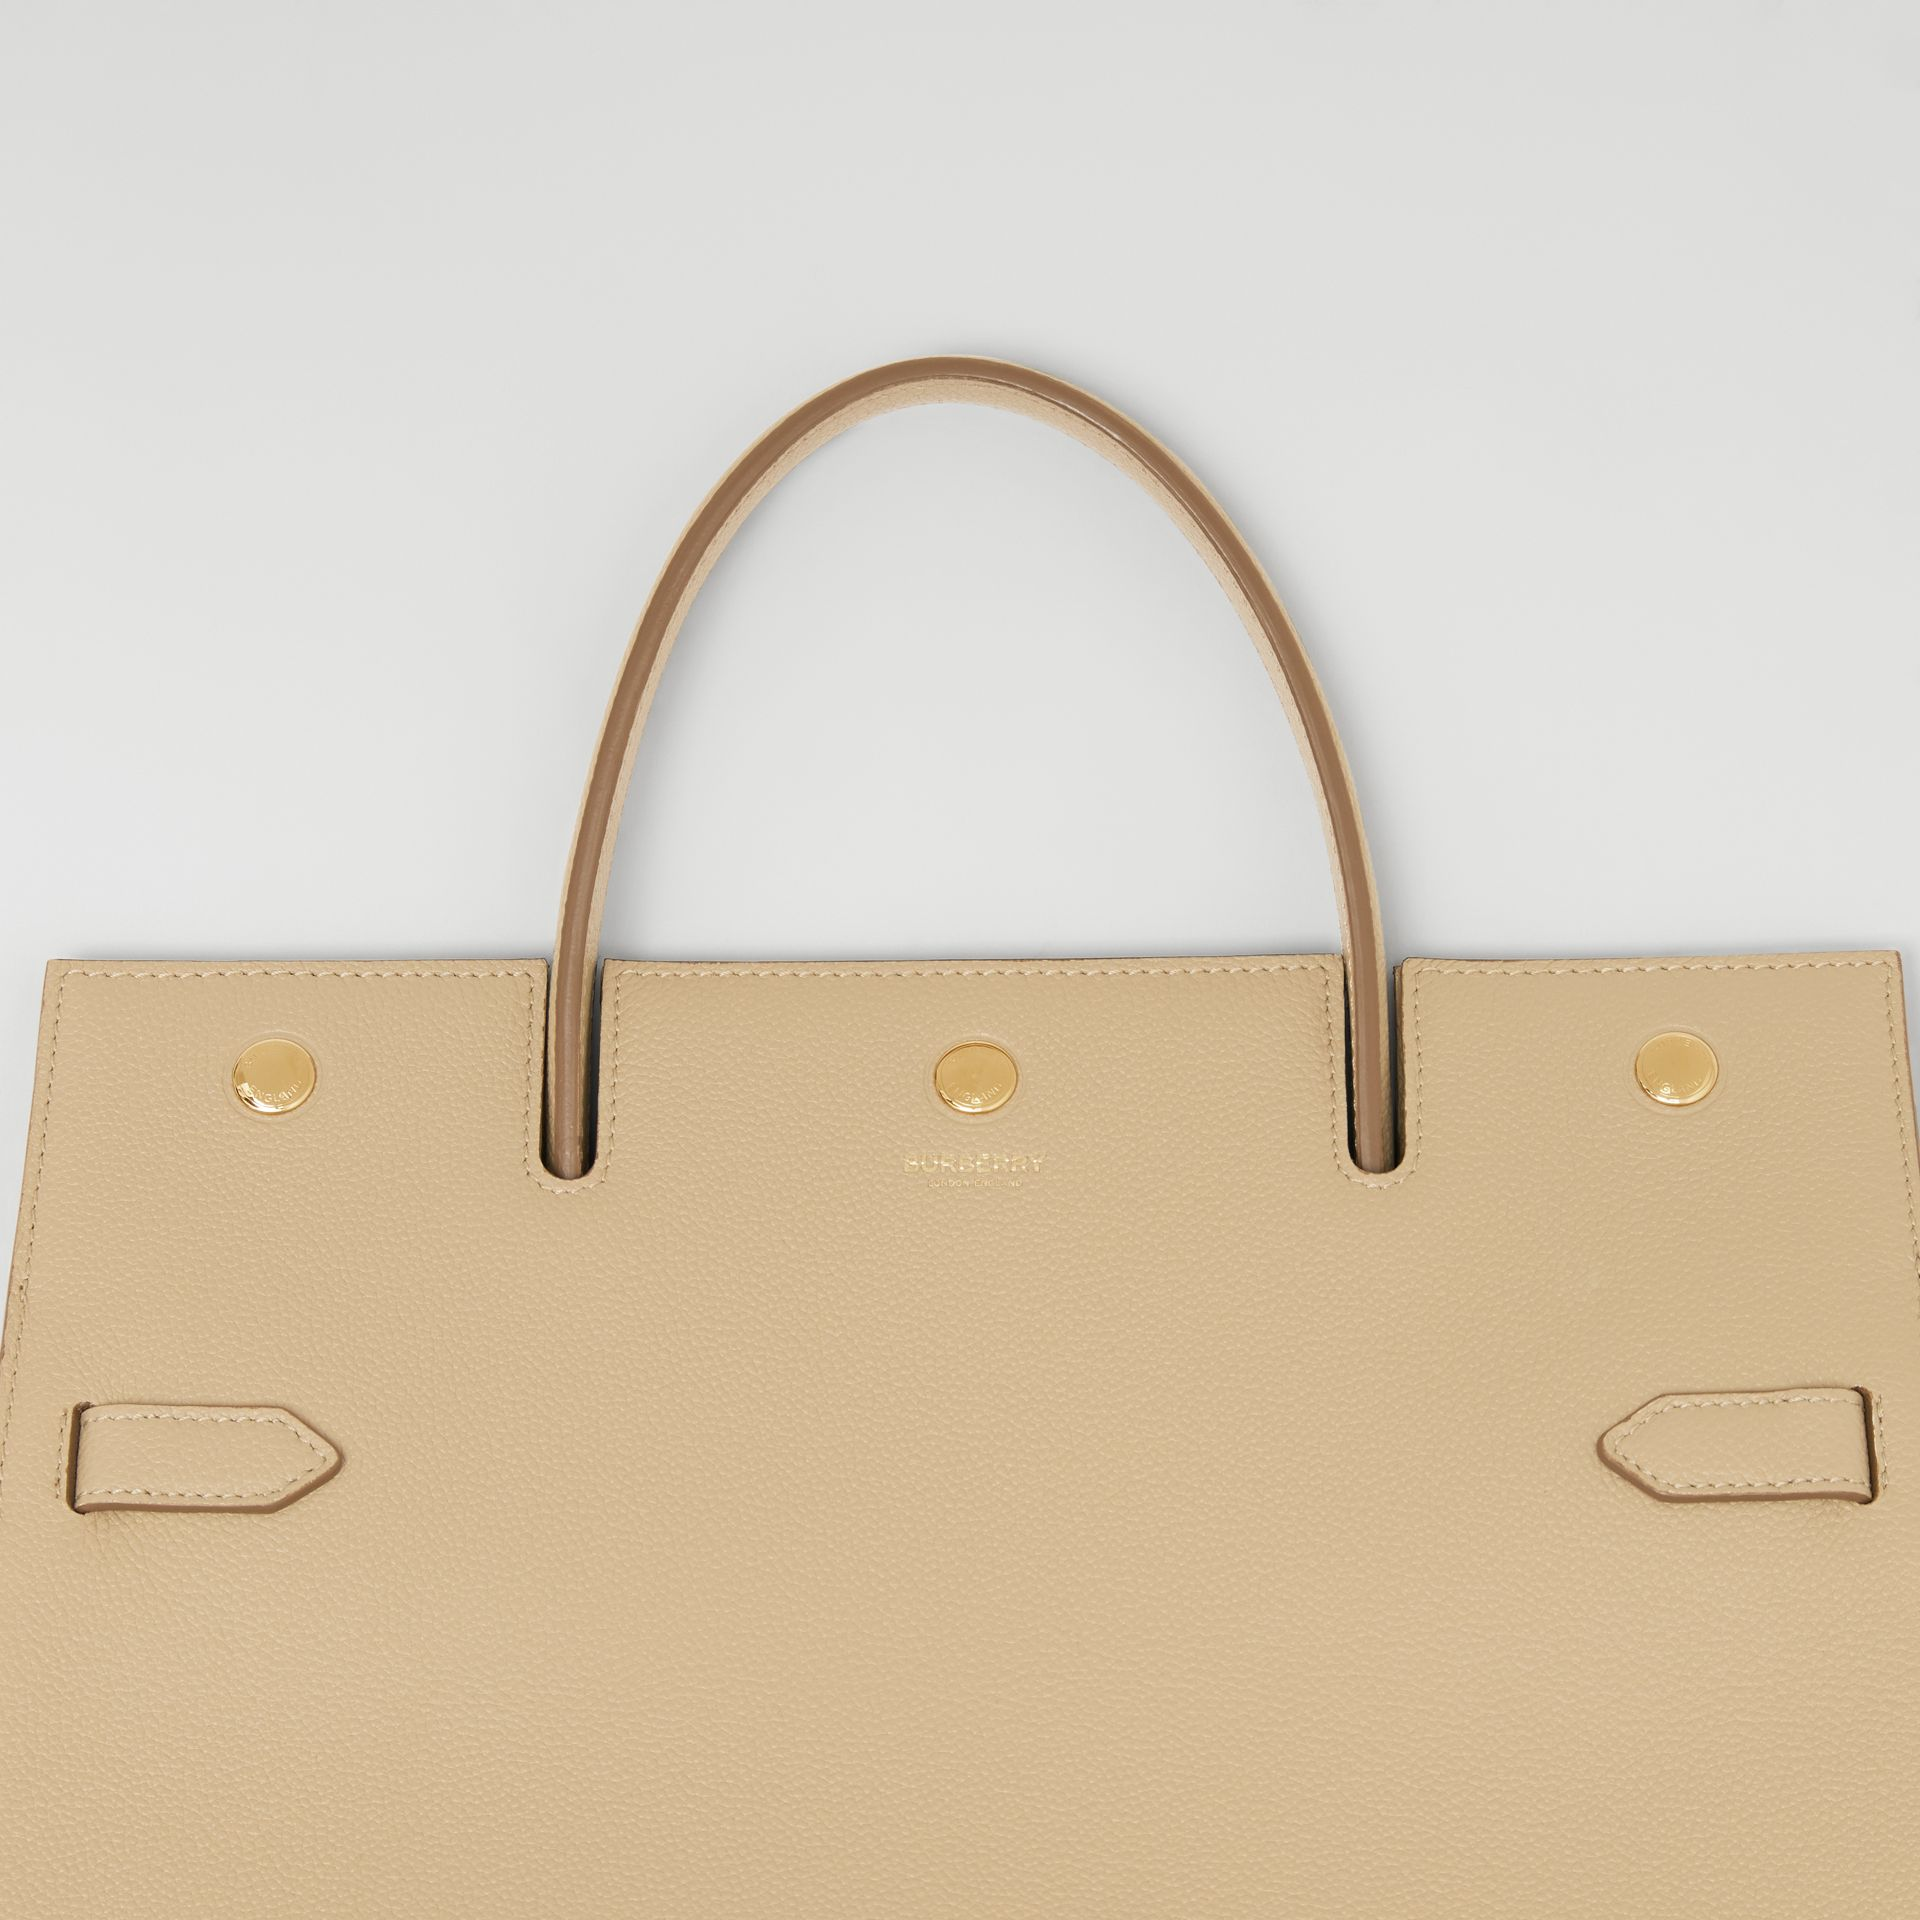 Medium Leather Title Bag in Honey - Women | Burberry - gallery image 8